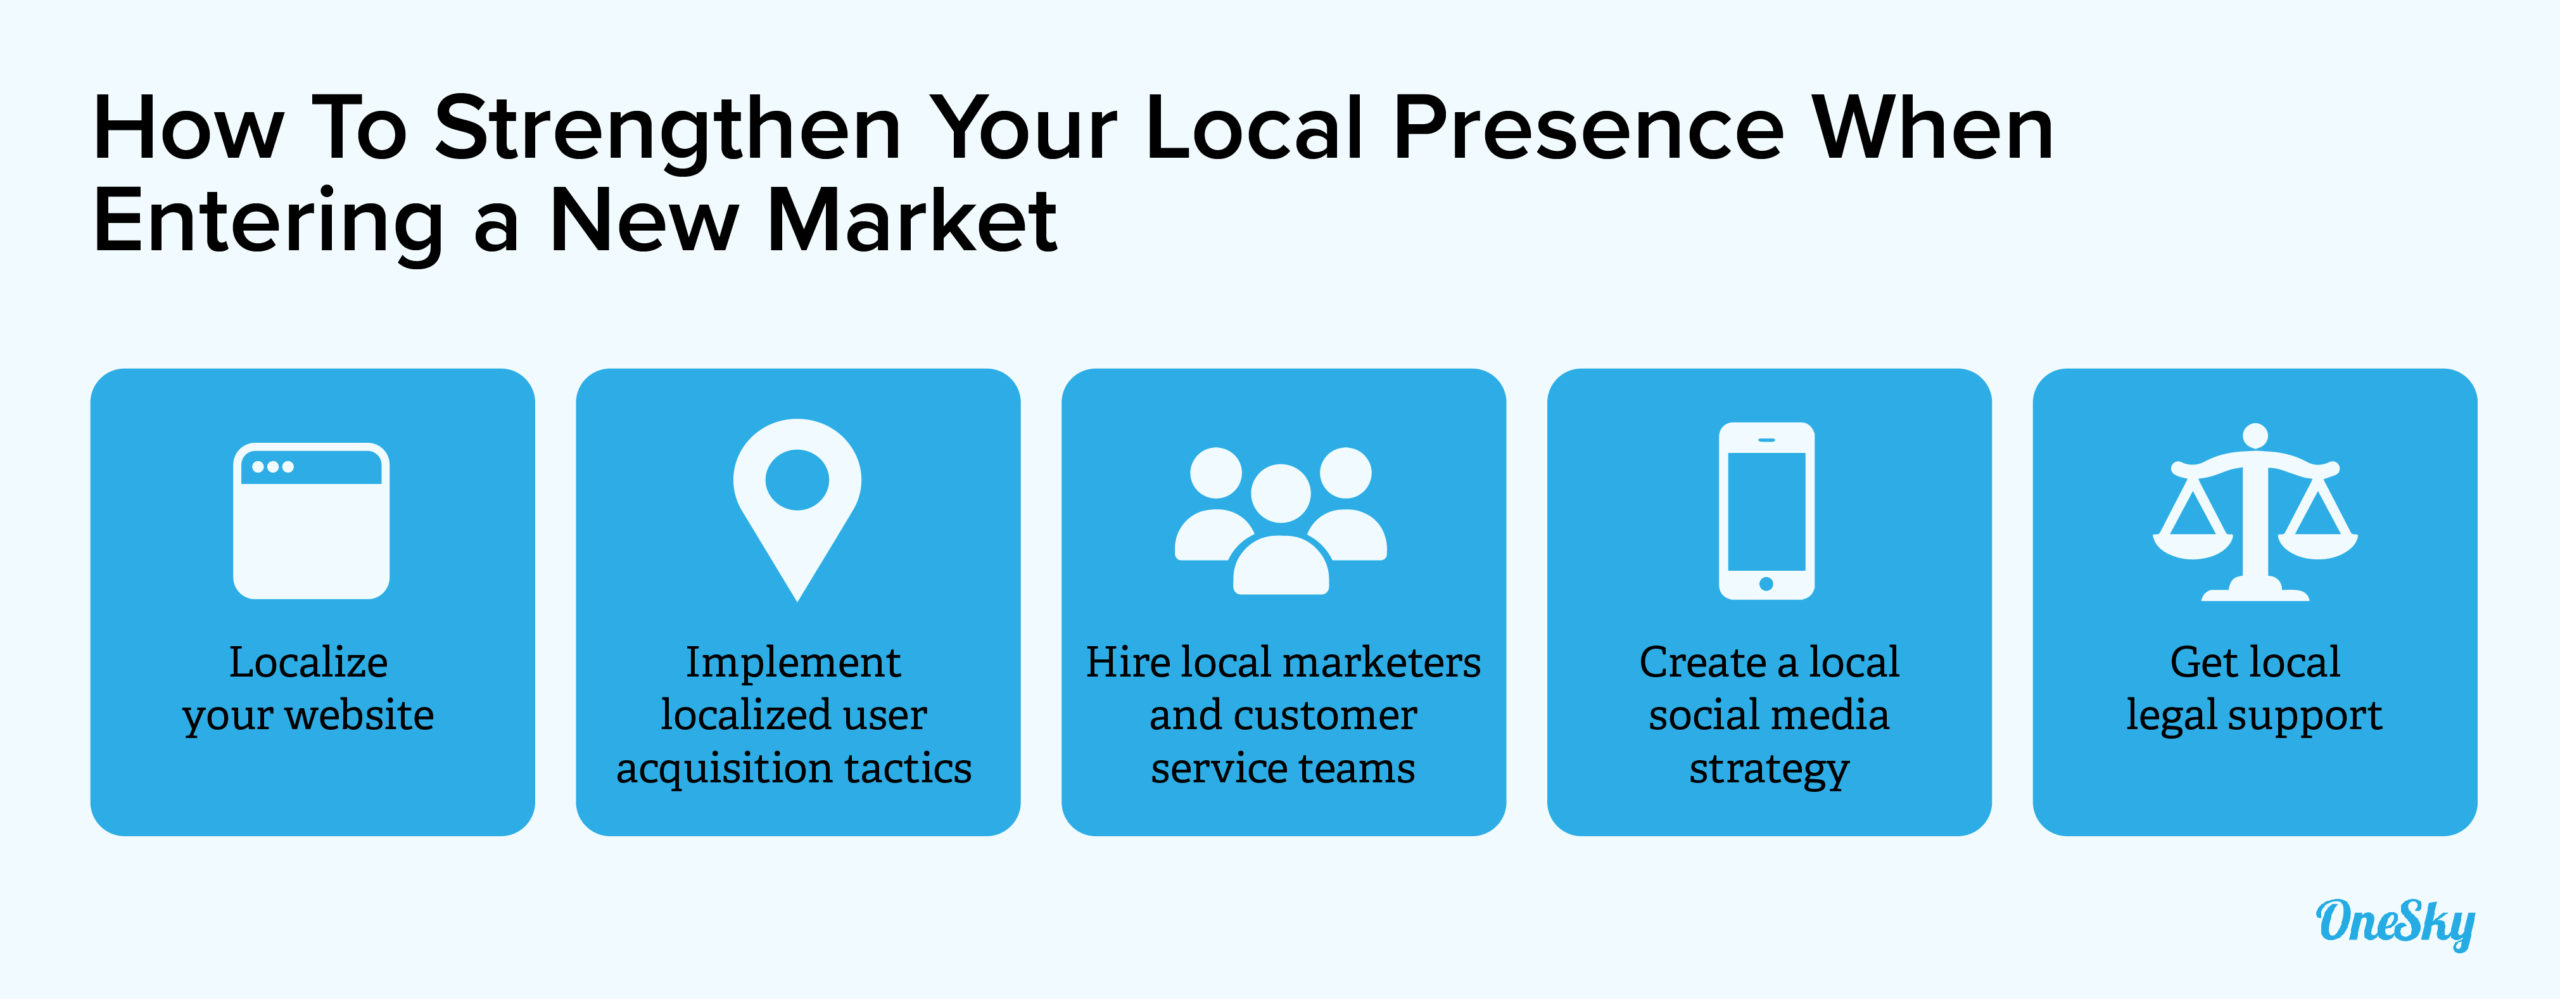 how to Strengthen Your Local Presence